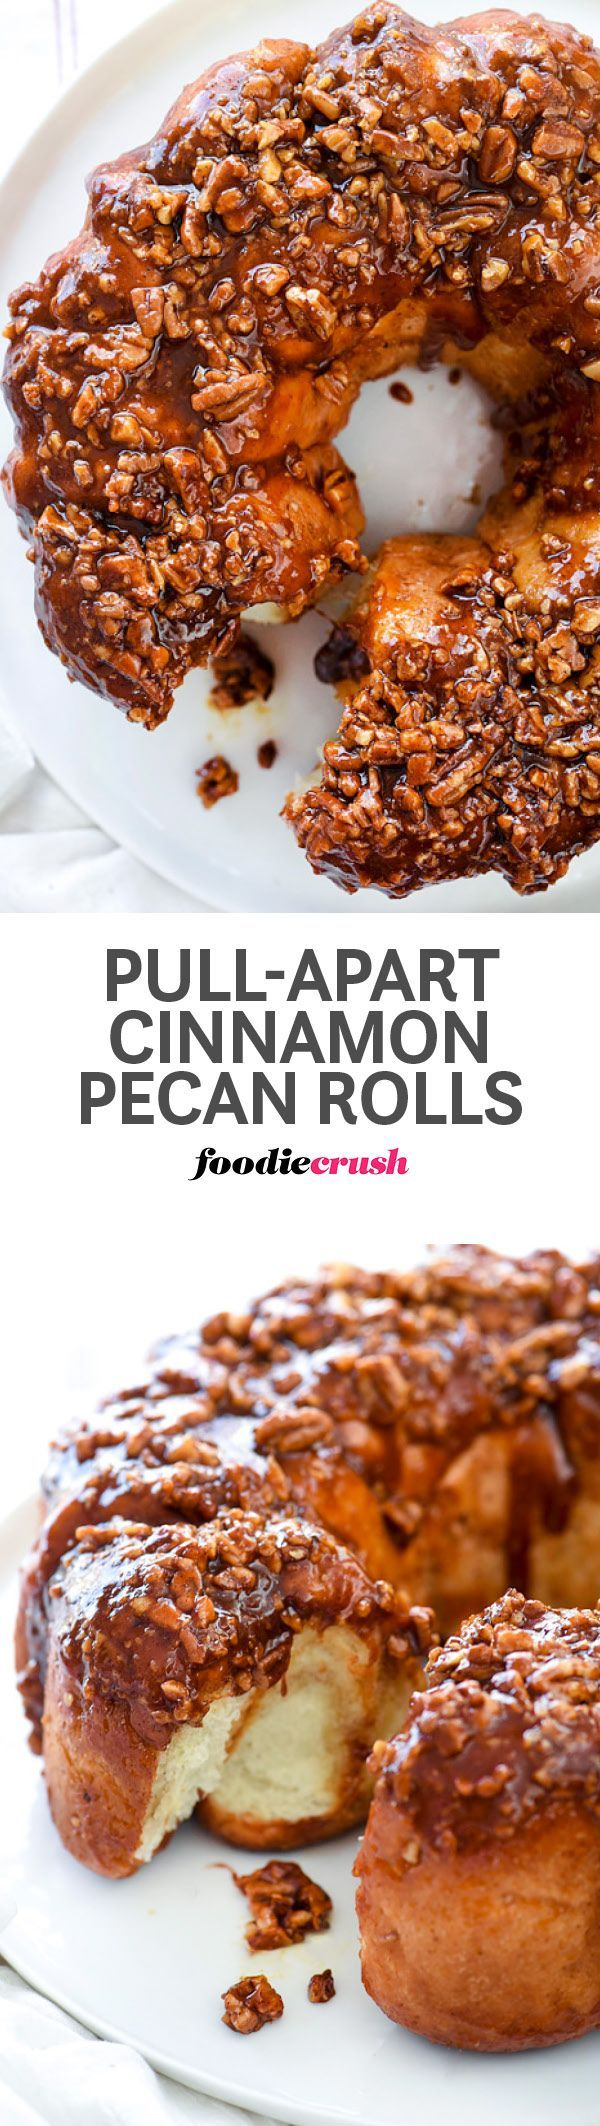 Store-bought frozen rolls make these super easy but delightfully delicious cinnamon pecan pull-apart rolls easy to make for any weekend or holiday breakfast or brunch | http://foodiecrush.com #brunch #Christmas #holiday #pecan #rolls